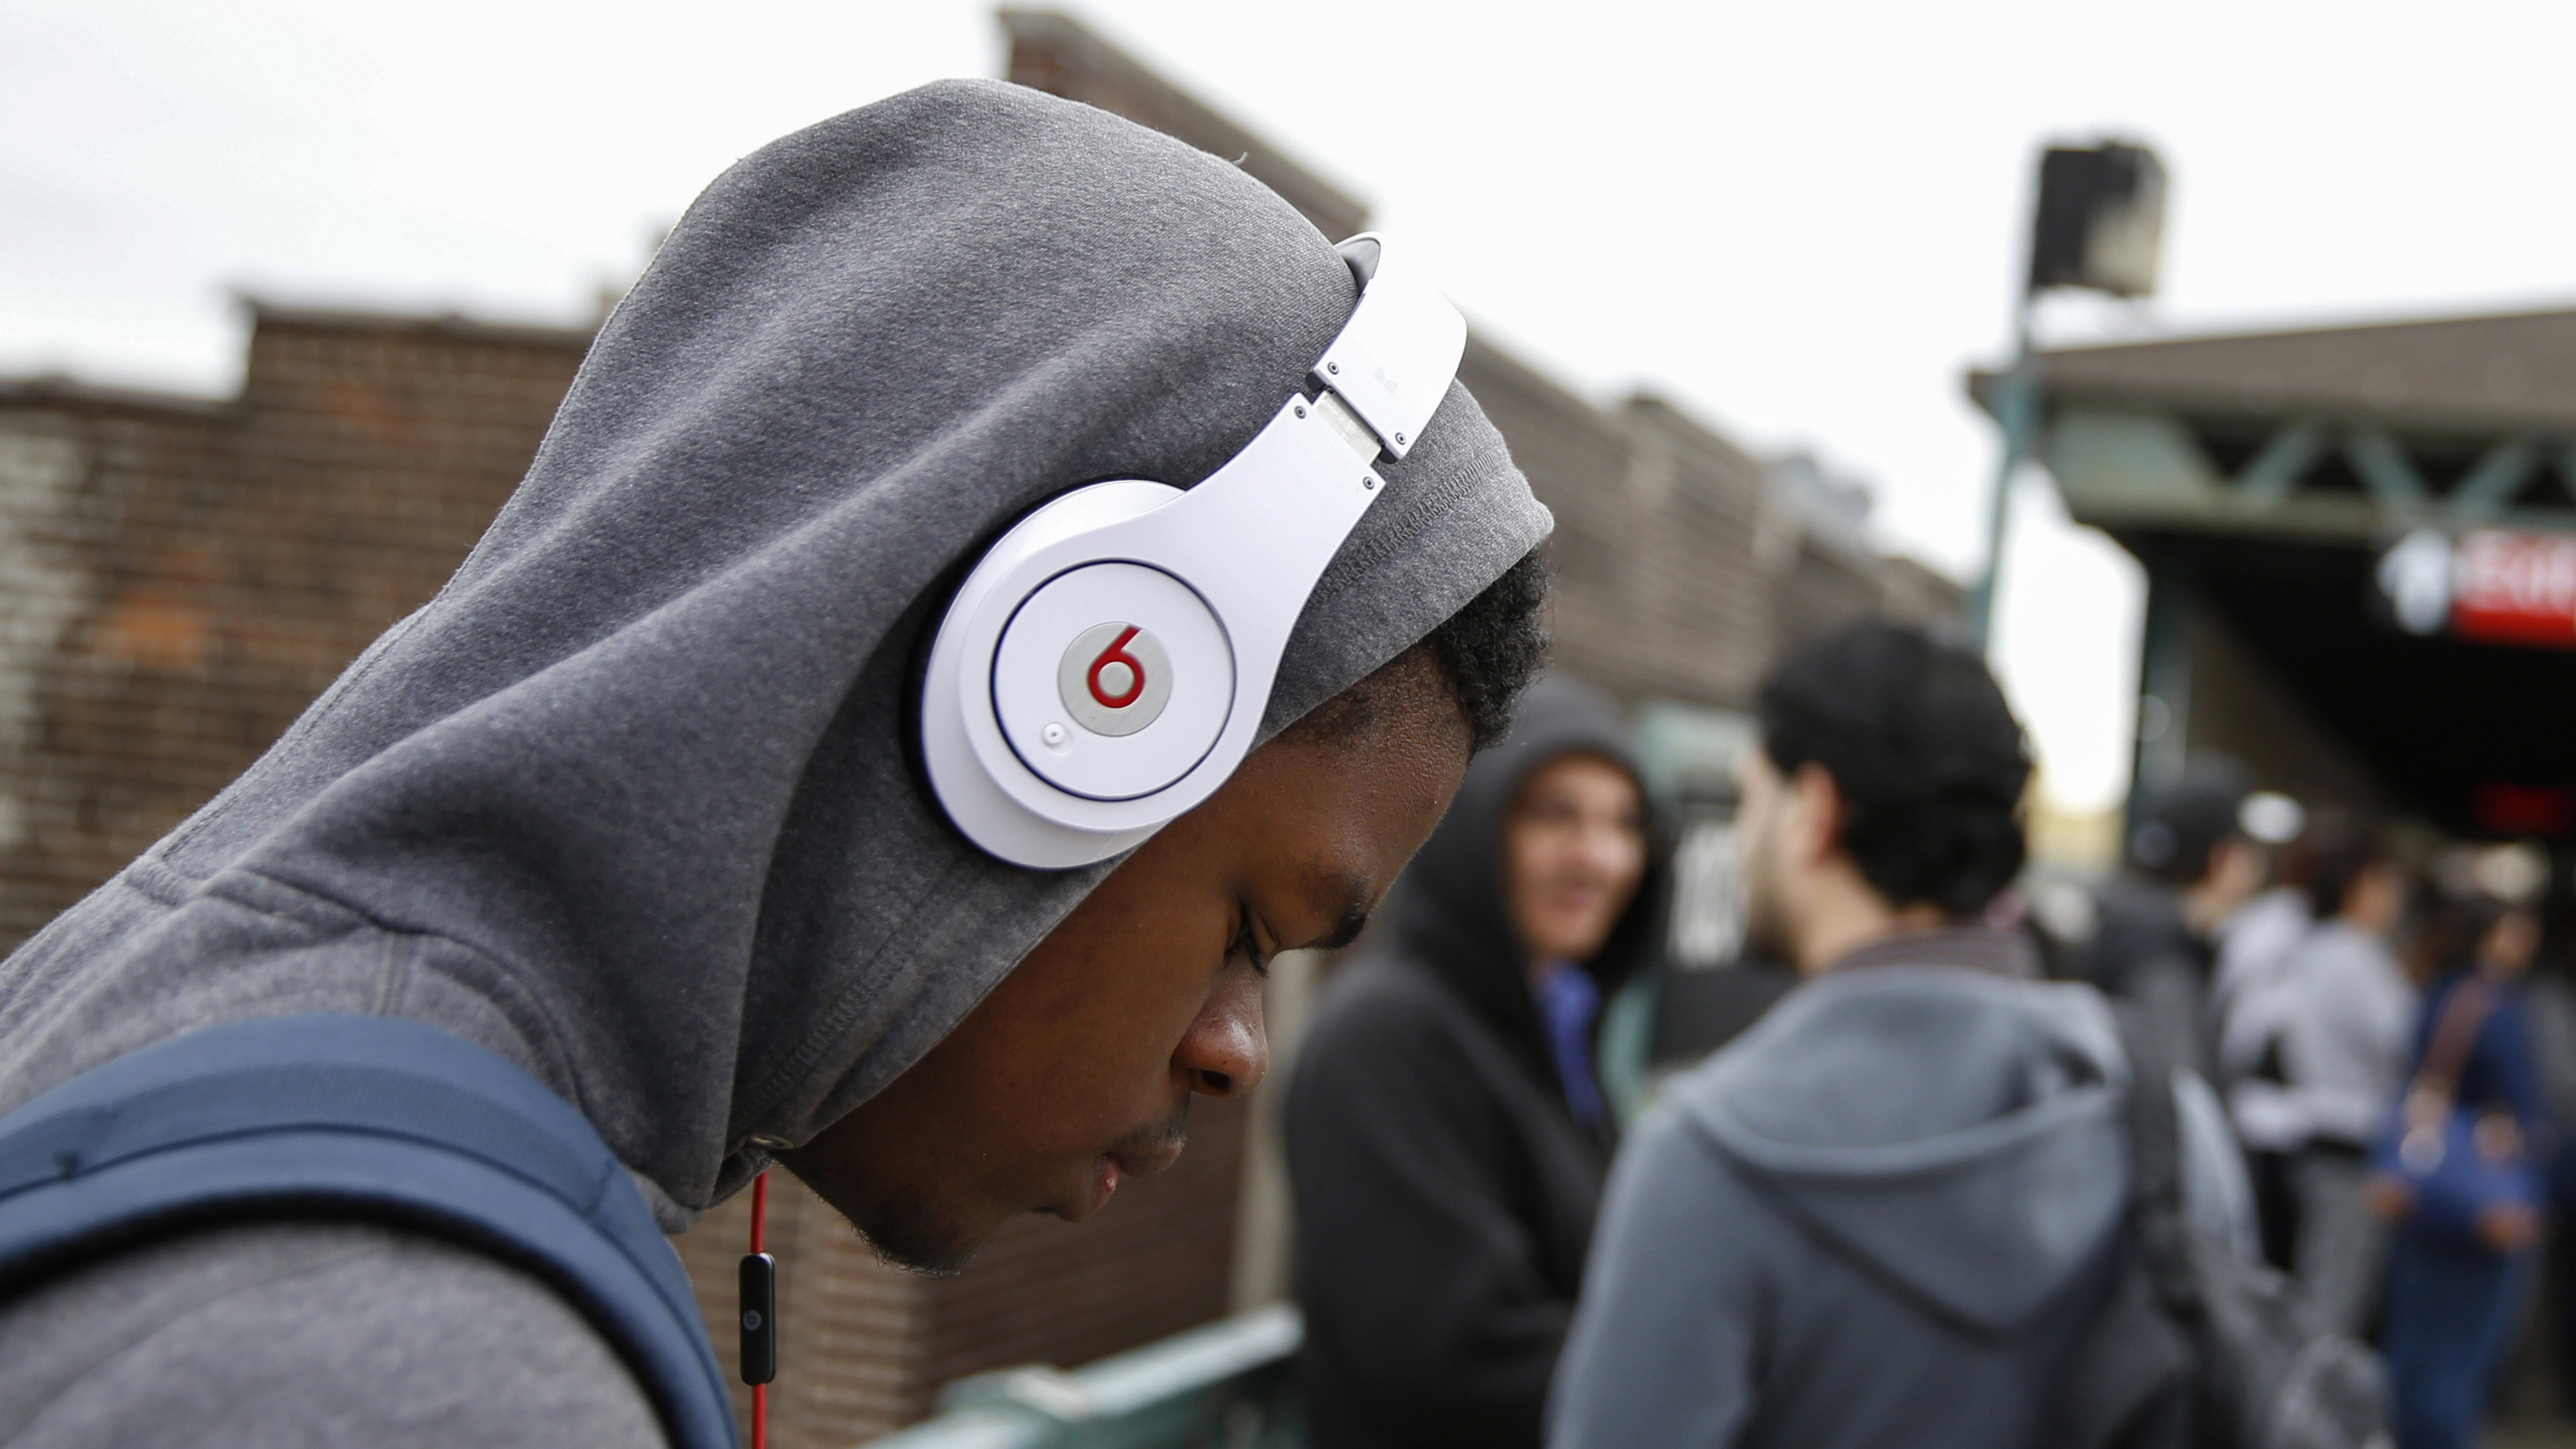 A commuter uses Beats brand headphones while waiting for the subway in New York May 29, 2014. Apple Inc will buy Beats for about $3 billion (1.79 billion pounds) and bring recording mogul Jimmy Iovine into its ranks, in a bid to make headway in the fast-growing music-subscription market. Through the acquisition, the iPhone maker also gains a line of high-end headphones popular with a young and urban demographic.  REUTERS/Shannon Stapleton   (UNITED STATES - Tags: BUSINESS) - RTR3REUL